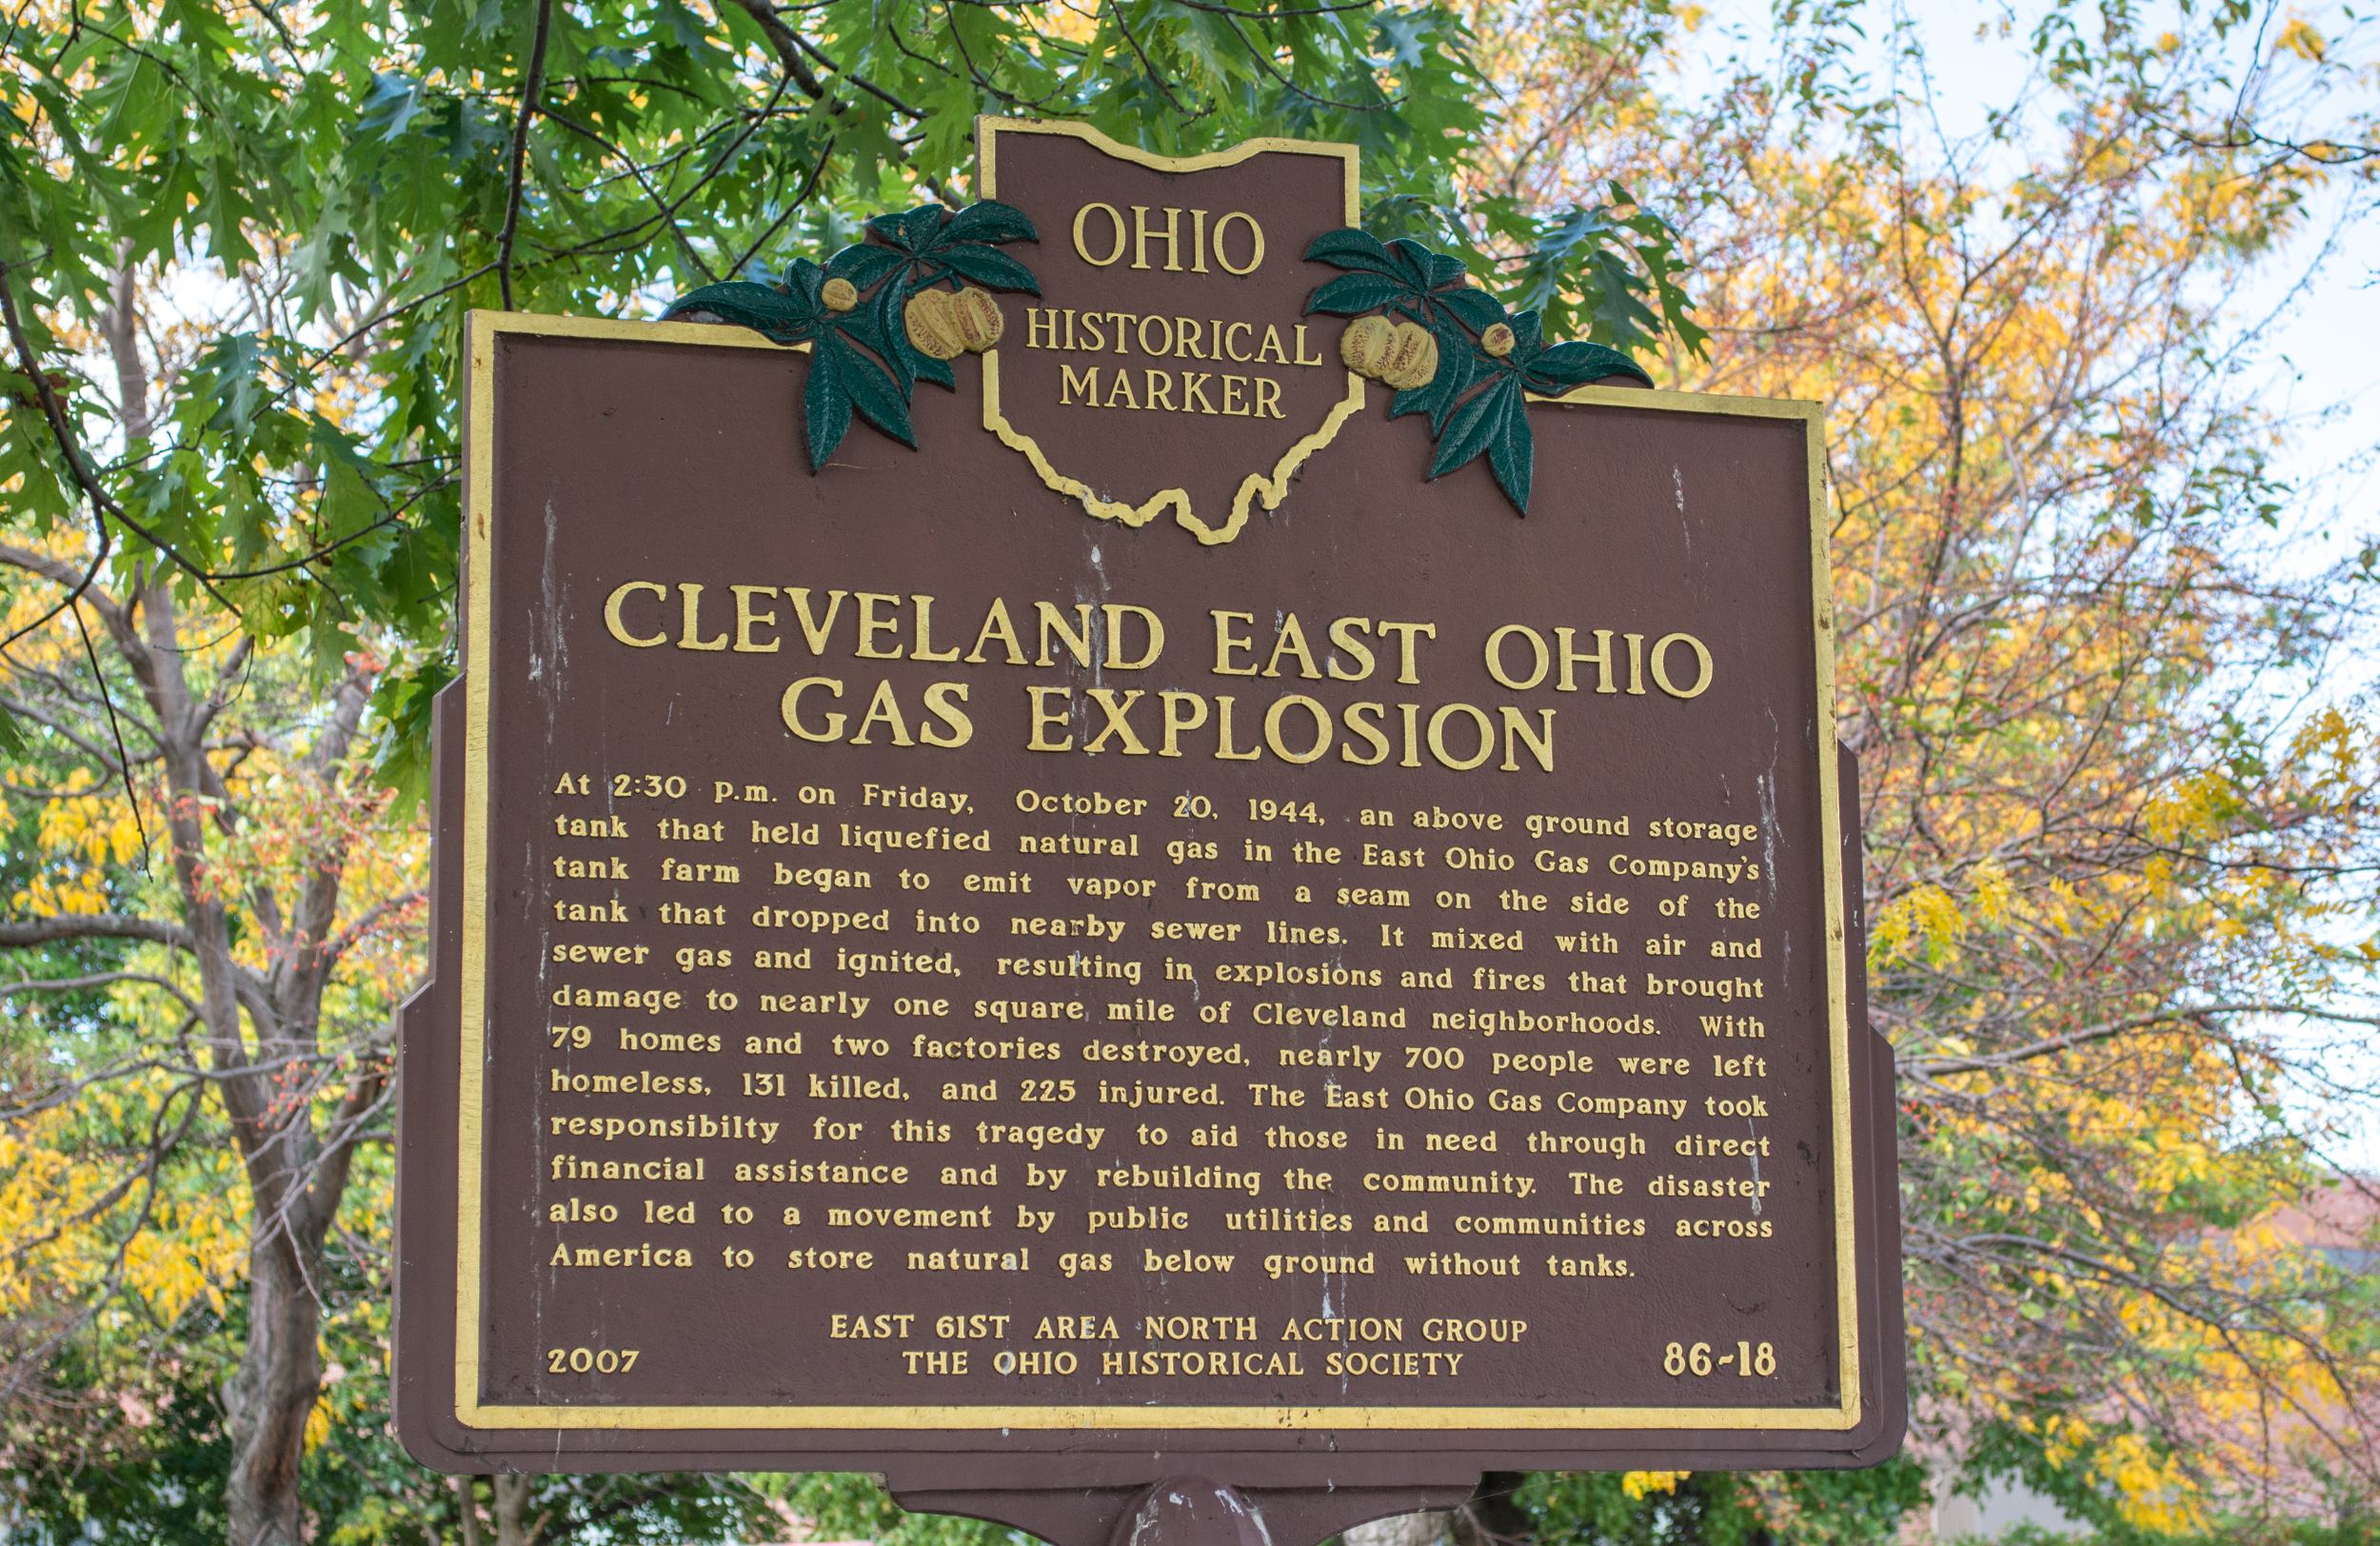 Cleveland East Ohio Gas explosion - Wikipedia